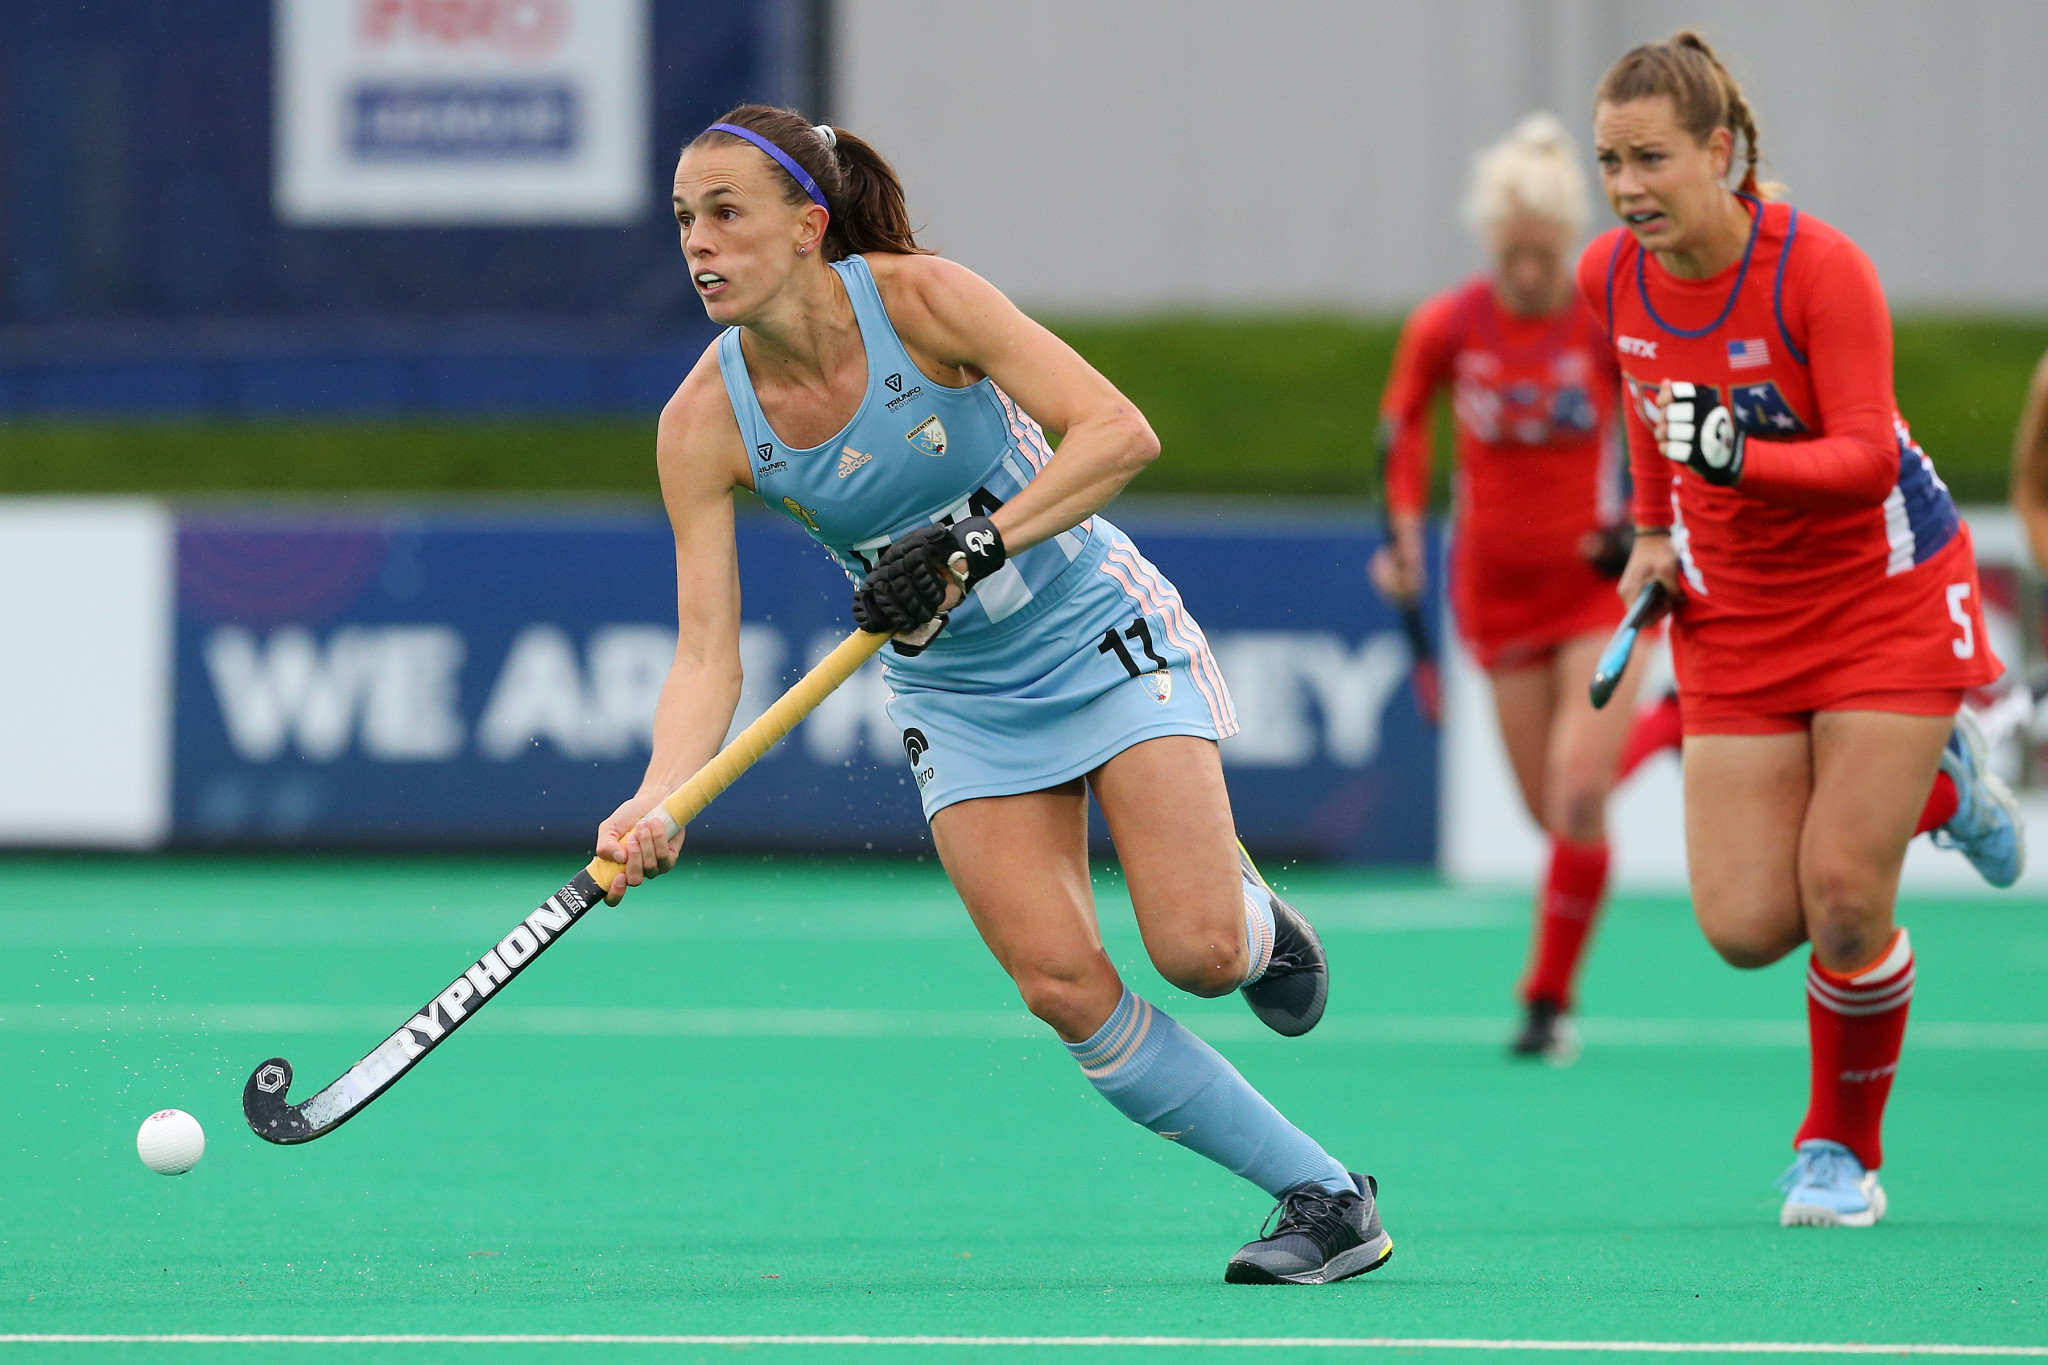 Carla Rebecchi made the top three FIH Pro League goals of the year after her effort against the United States ©Getty Images